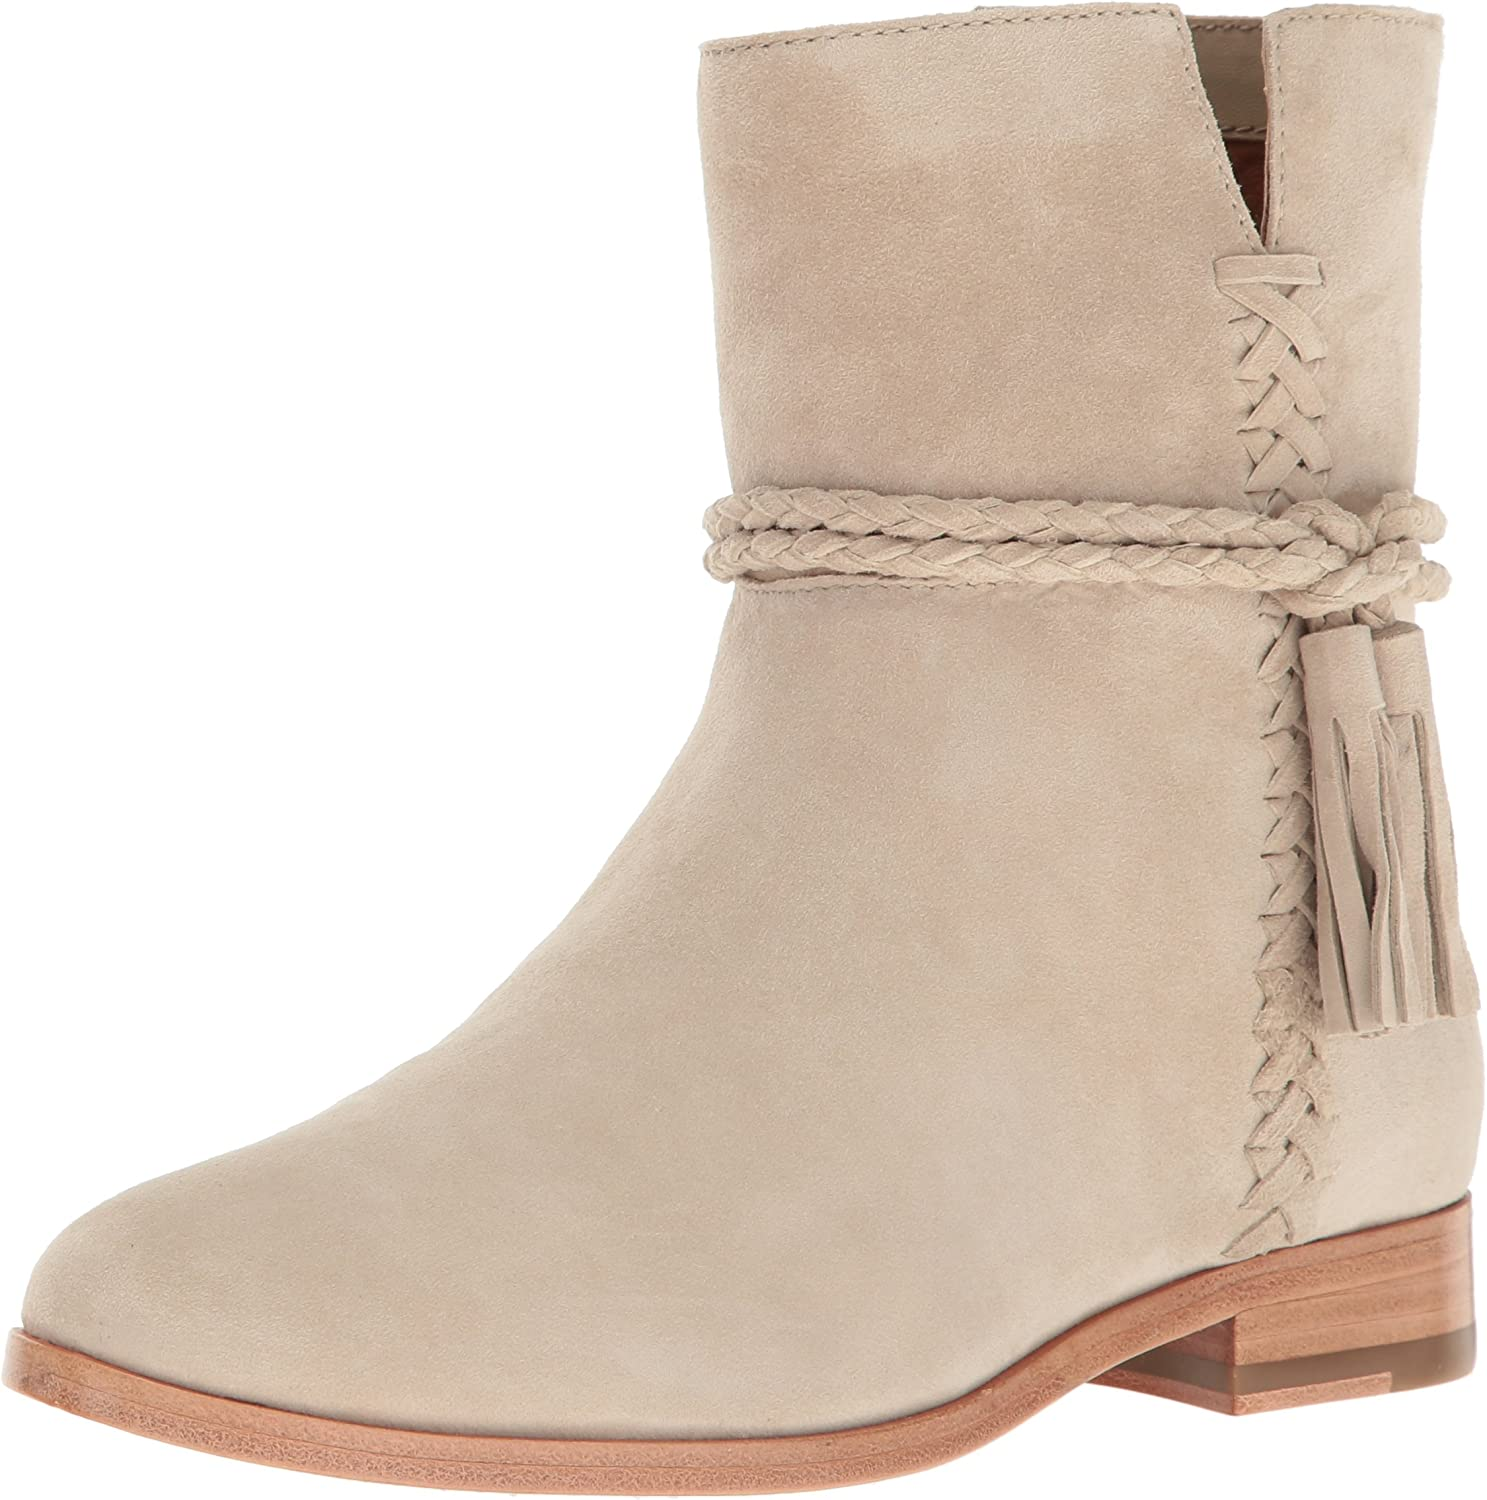 Frye Womens Tina Whipstitch Tassel Boot